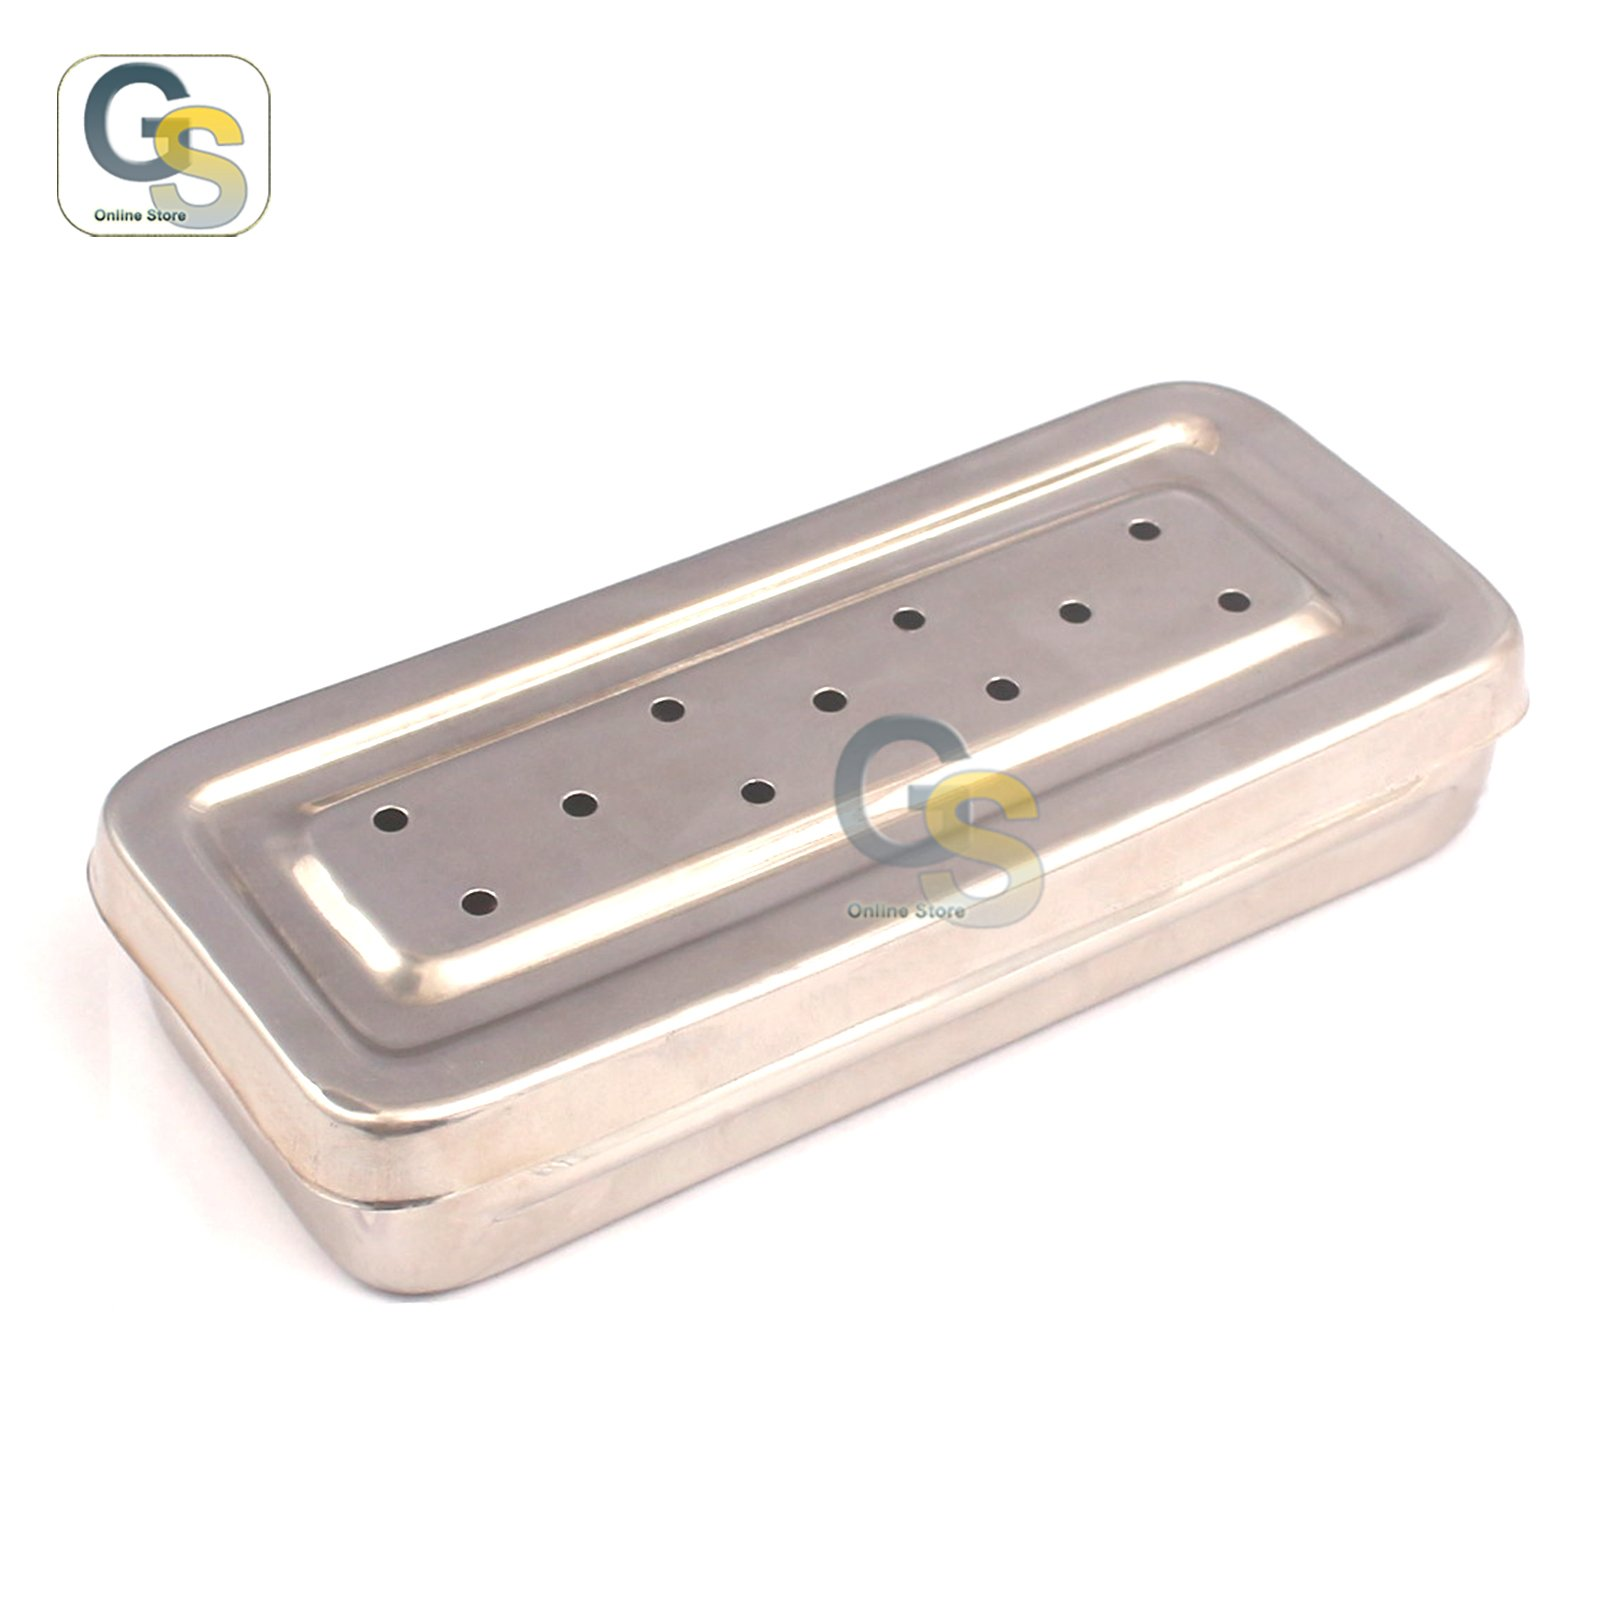 G.S 17x7x3 Cm Instruments Box Perforated Stainless Steel Holloware Tray Box Best Quality